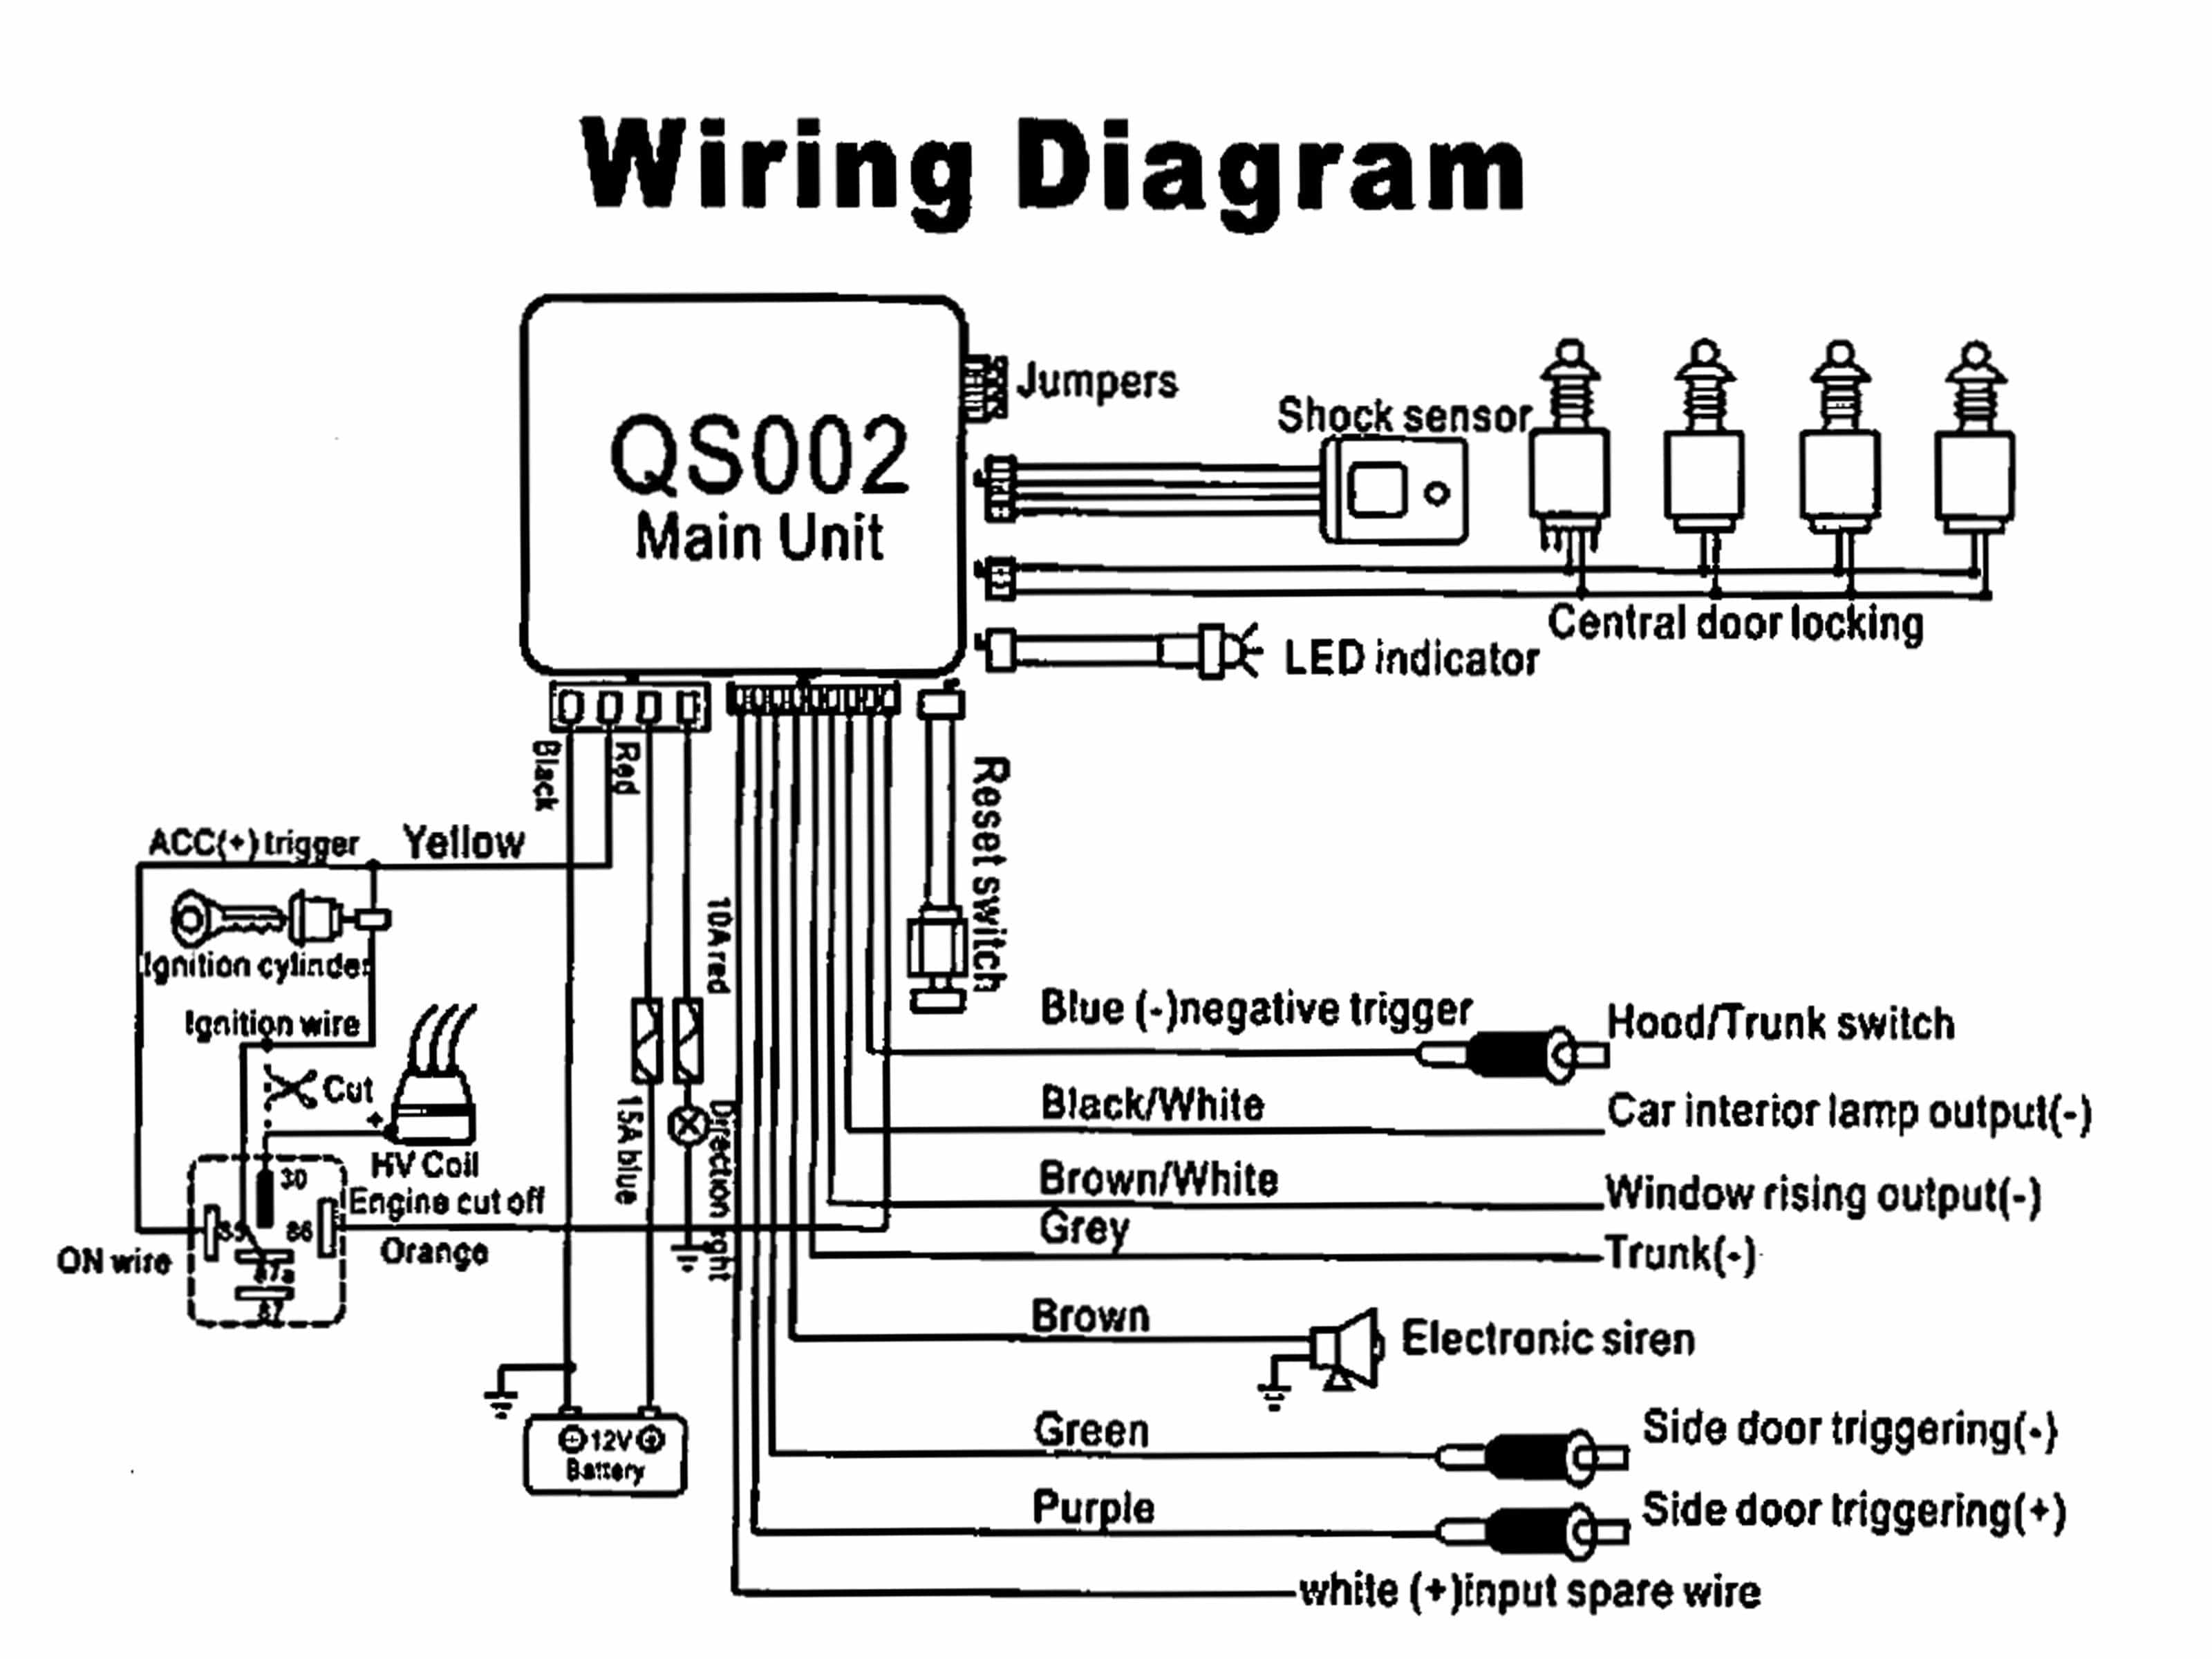 AlarmInstructions_7a98a2bc d189 4c5b 99b3 c774abdbef28 clarion cmd5 wiring diagram wiring diagram shrutiradio  at gsmportal.co